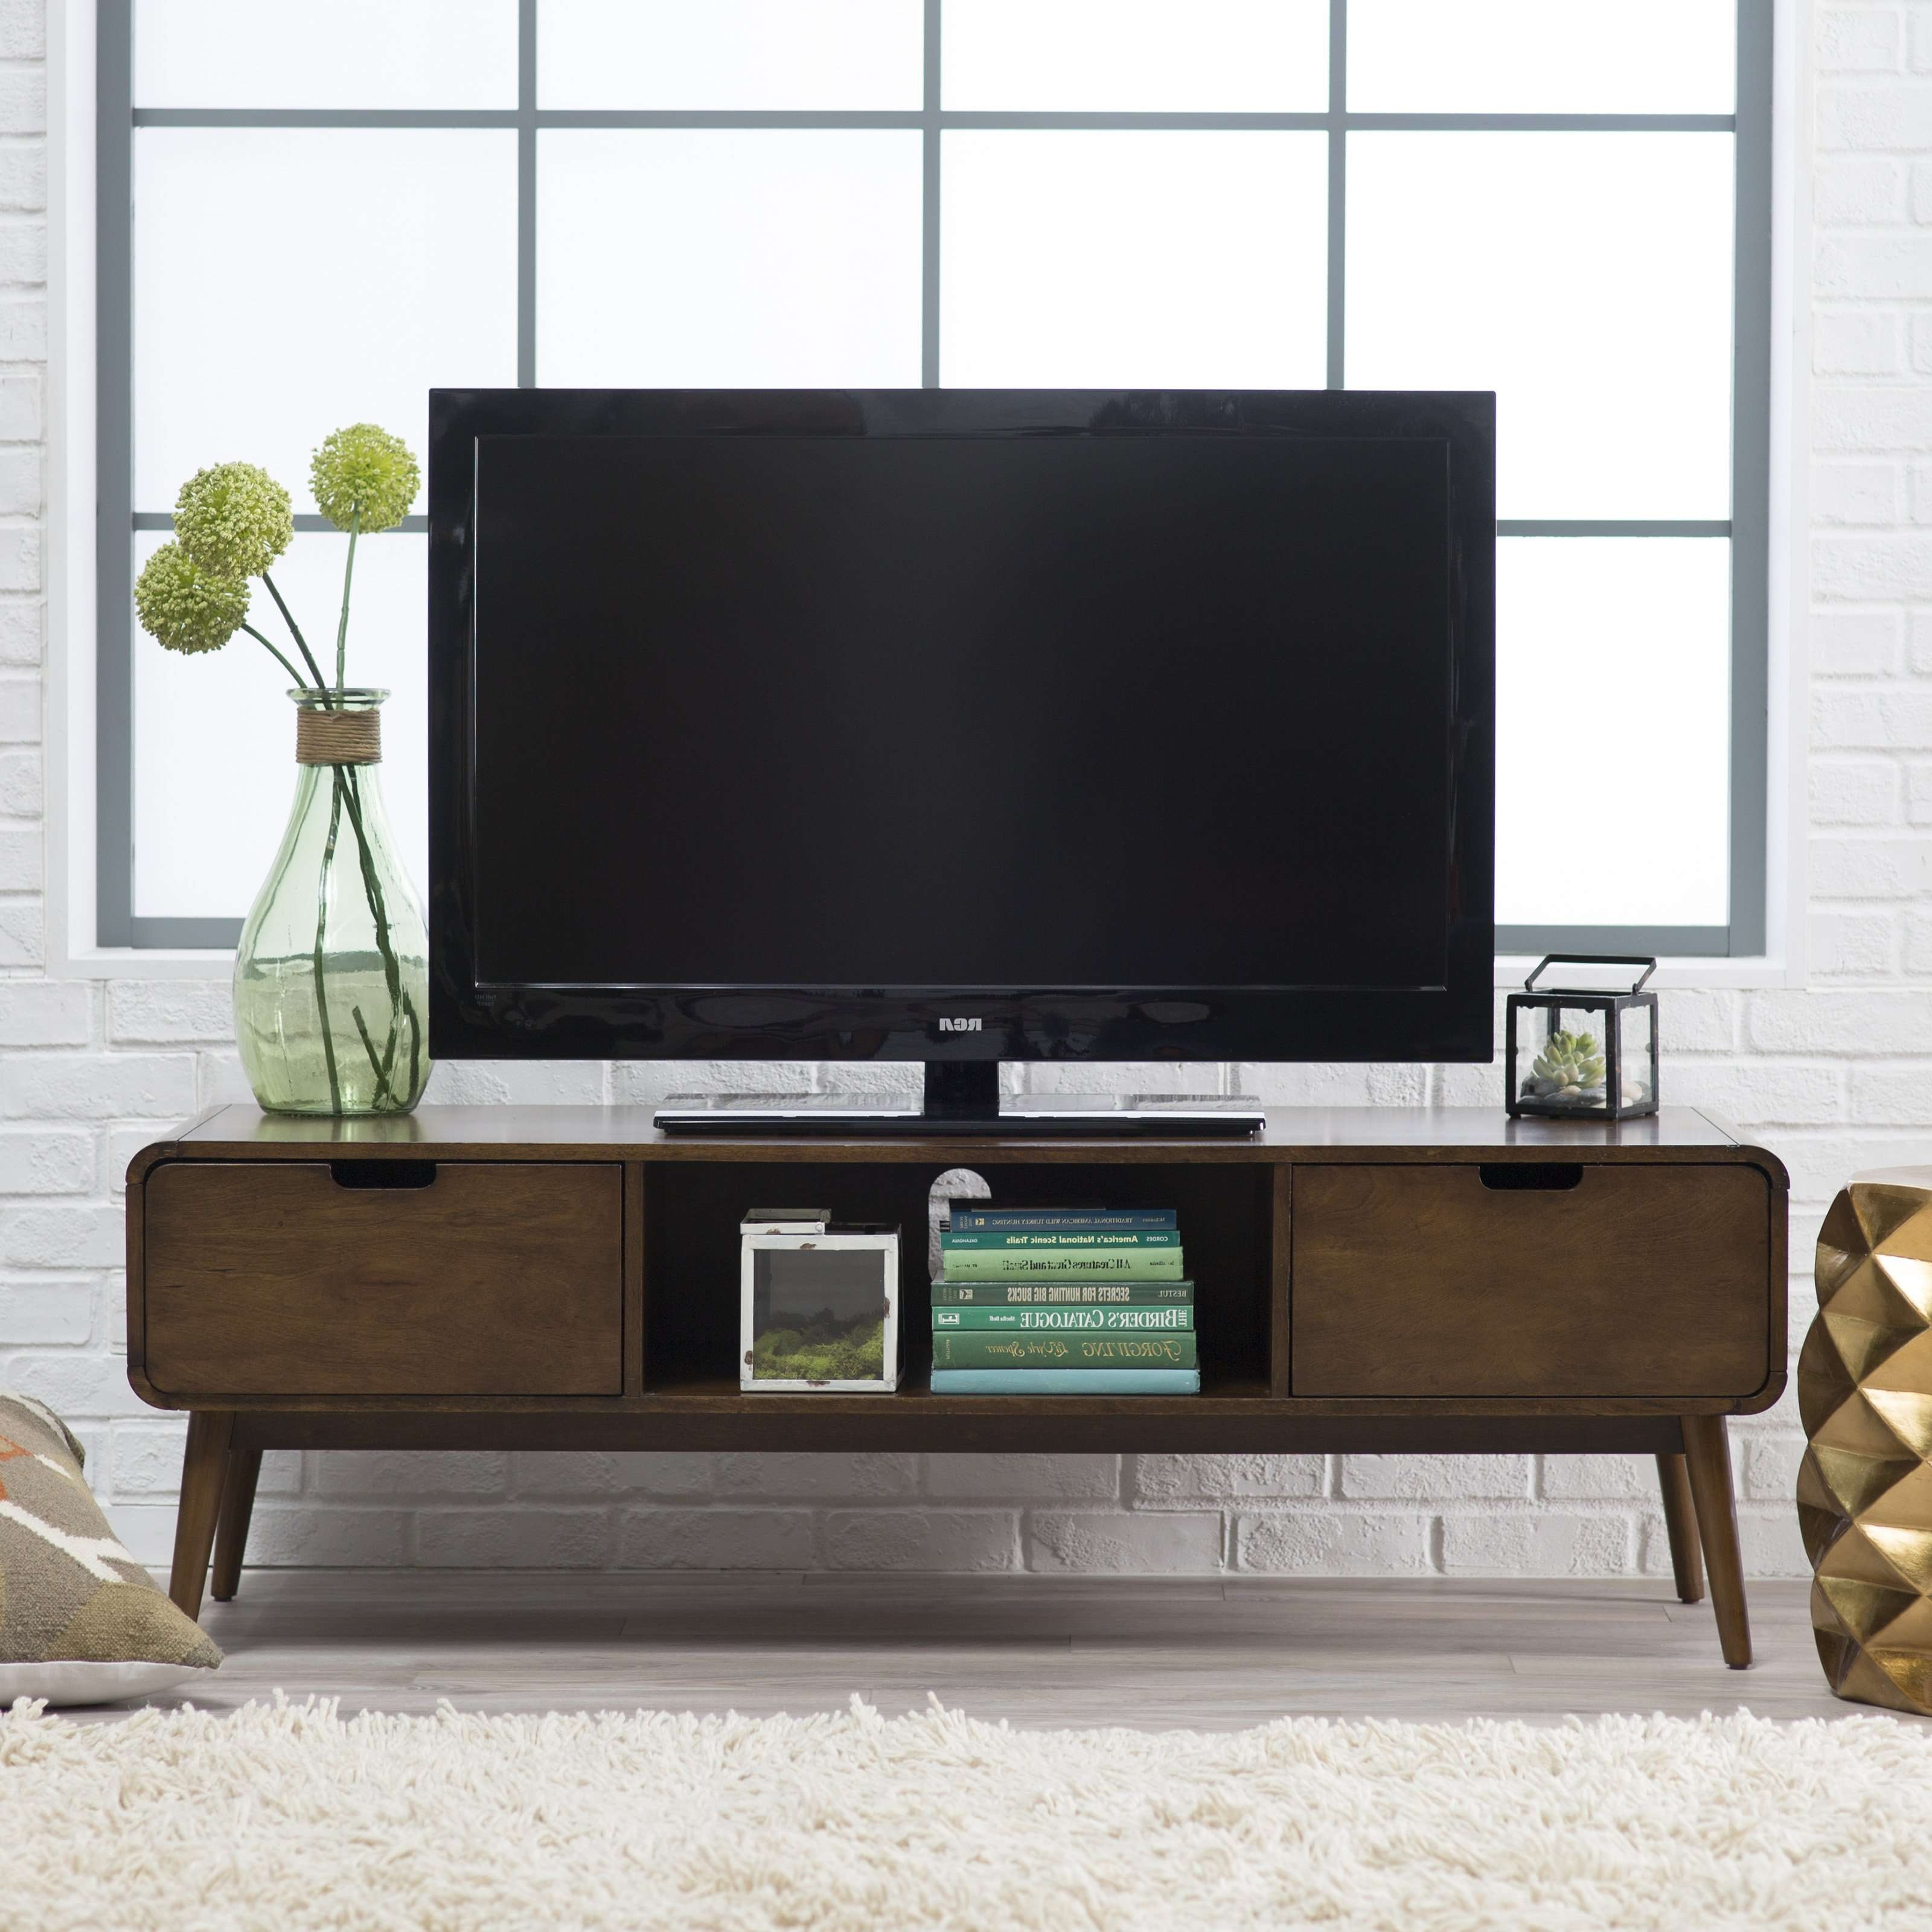 Tv : Modern Low Profile Tv Stands Amiable Modern Low Profile Tv Inside Low Profile Contemporary Tv Stands (View 16 of 20)